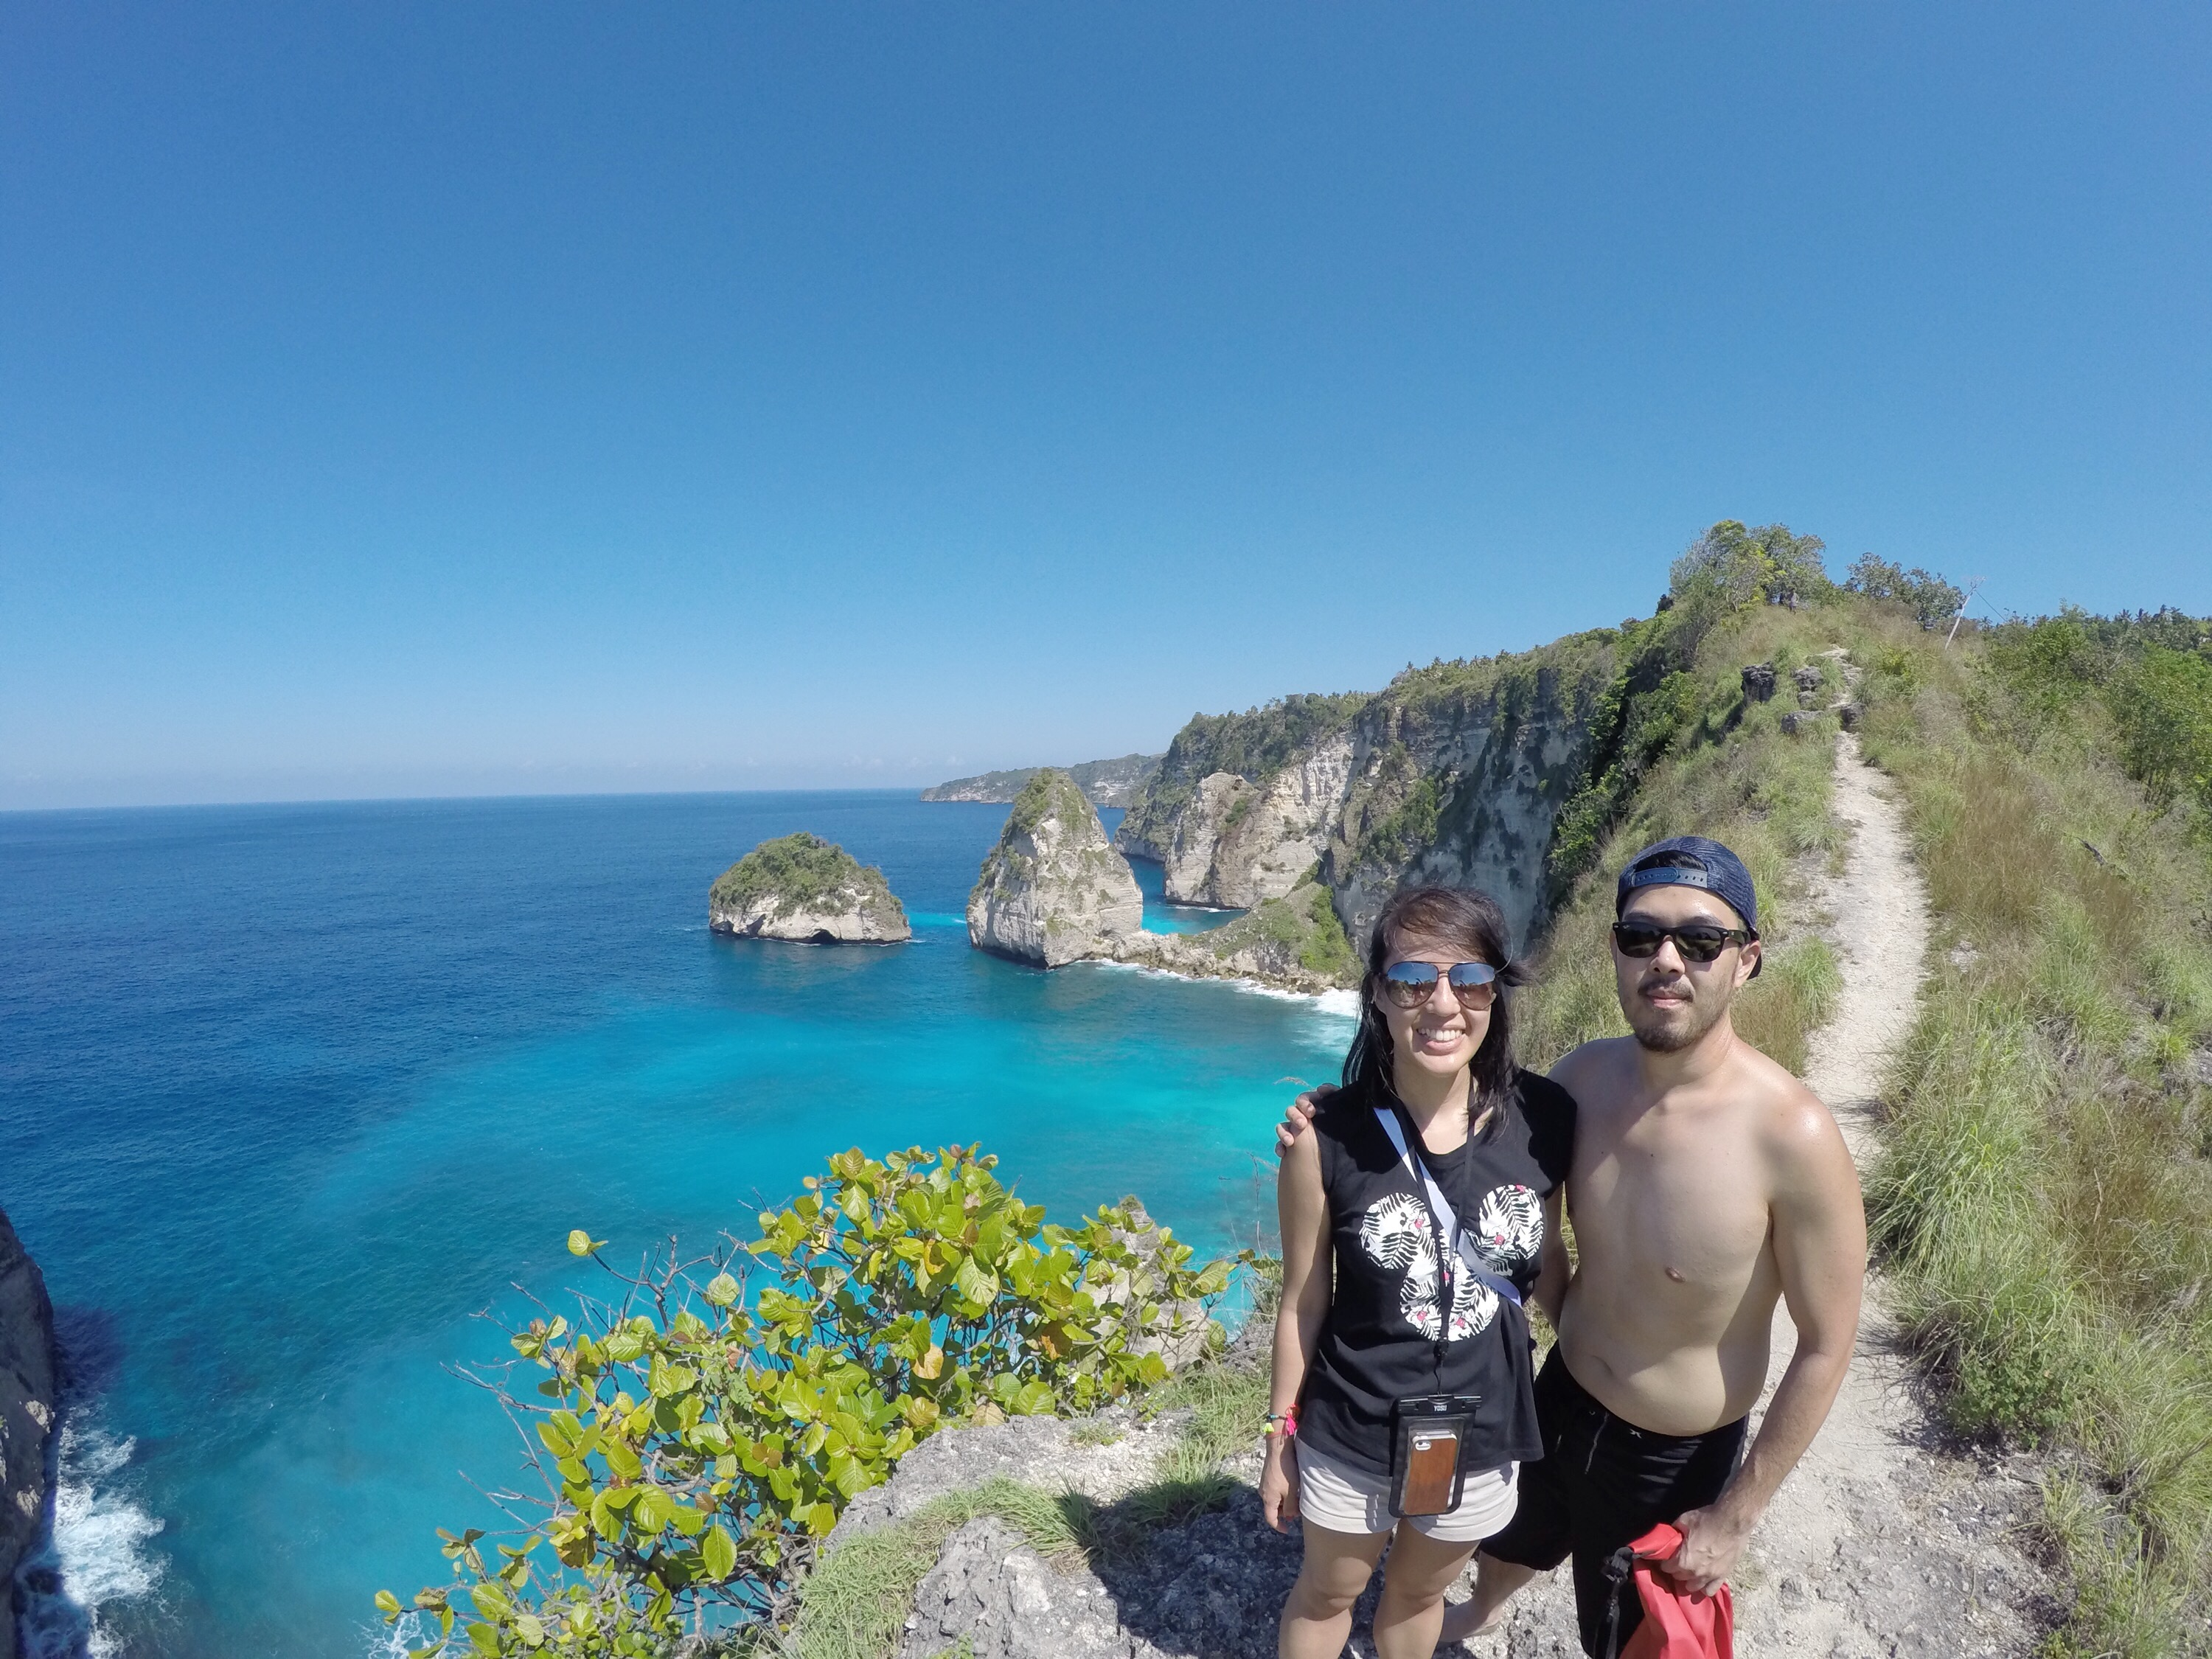 Land Trip and Snorkling